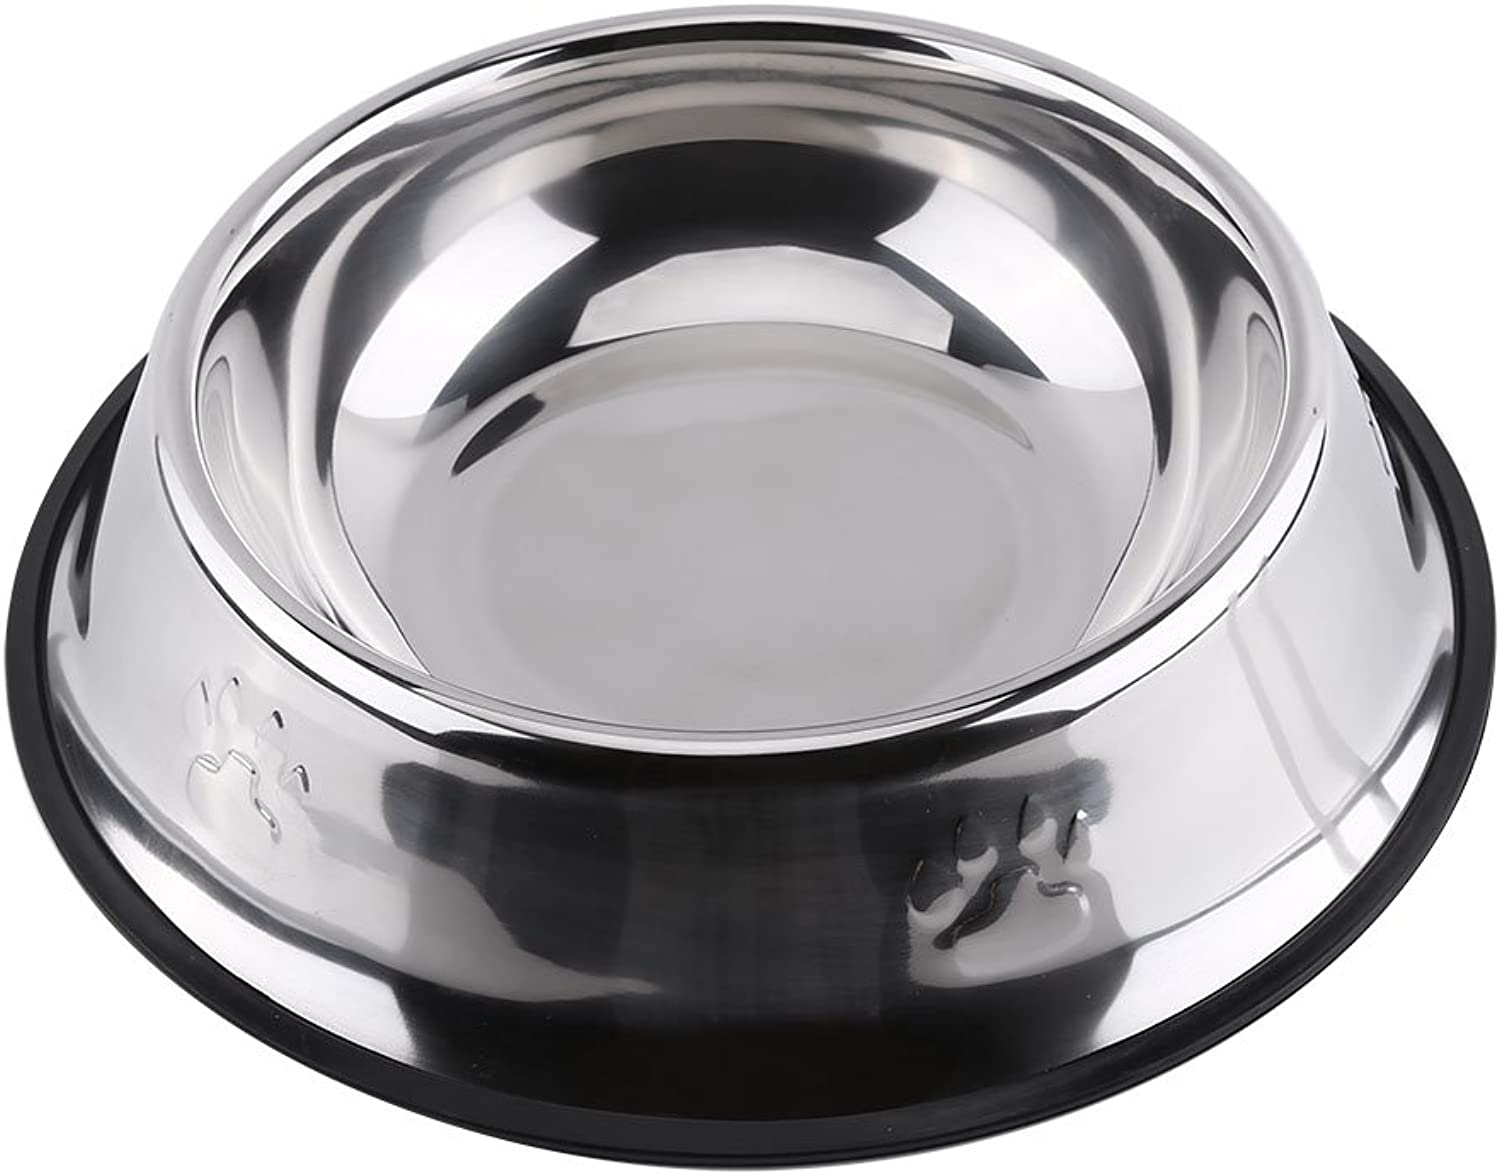 Paw Print Designed Dog Bowl Diner Dish Stainless Steel Anti Slip Cat Food Water with Paw Design Feeder (30cm)